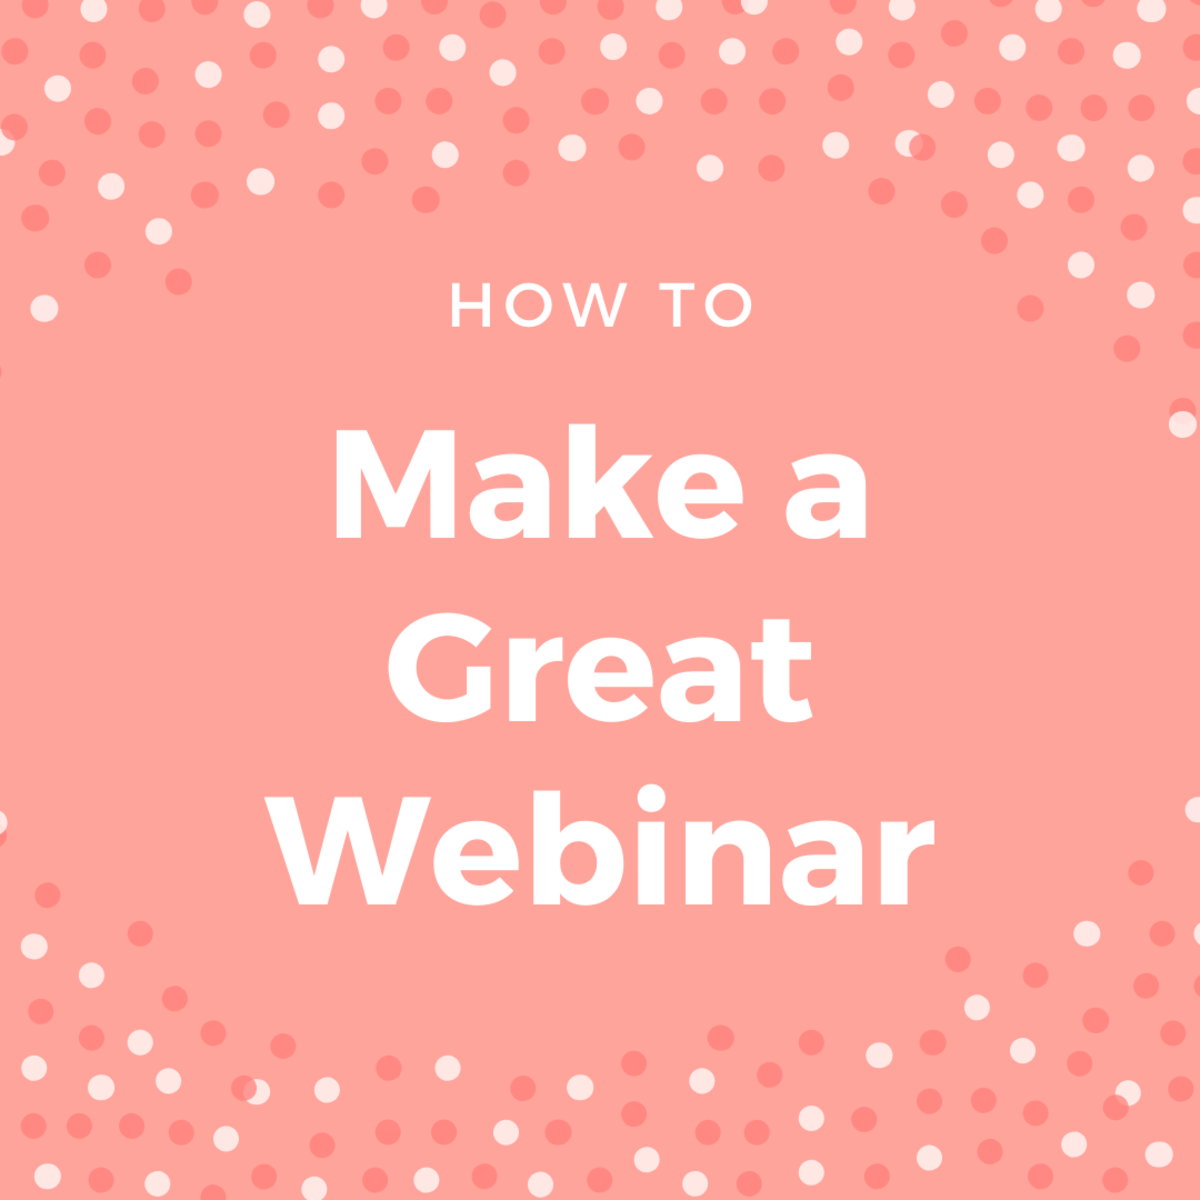 How to Make a Great Webinar